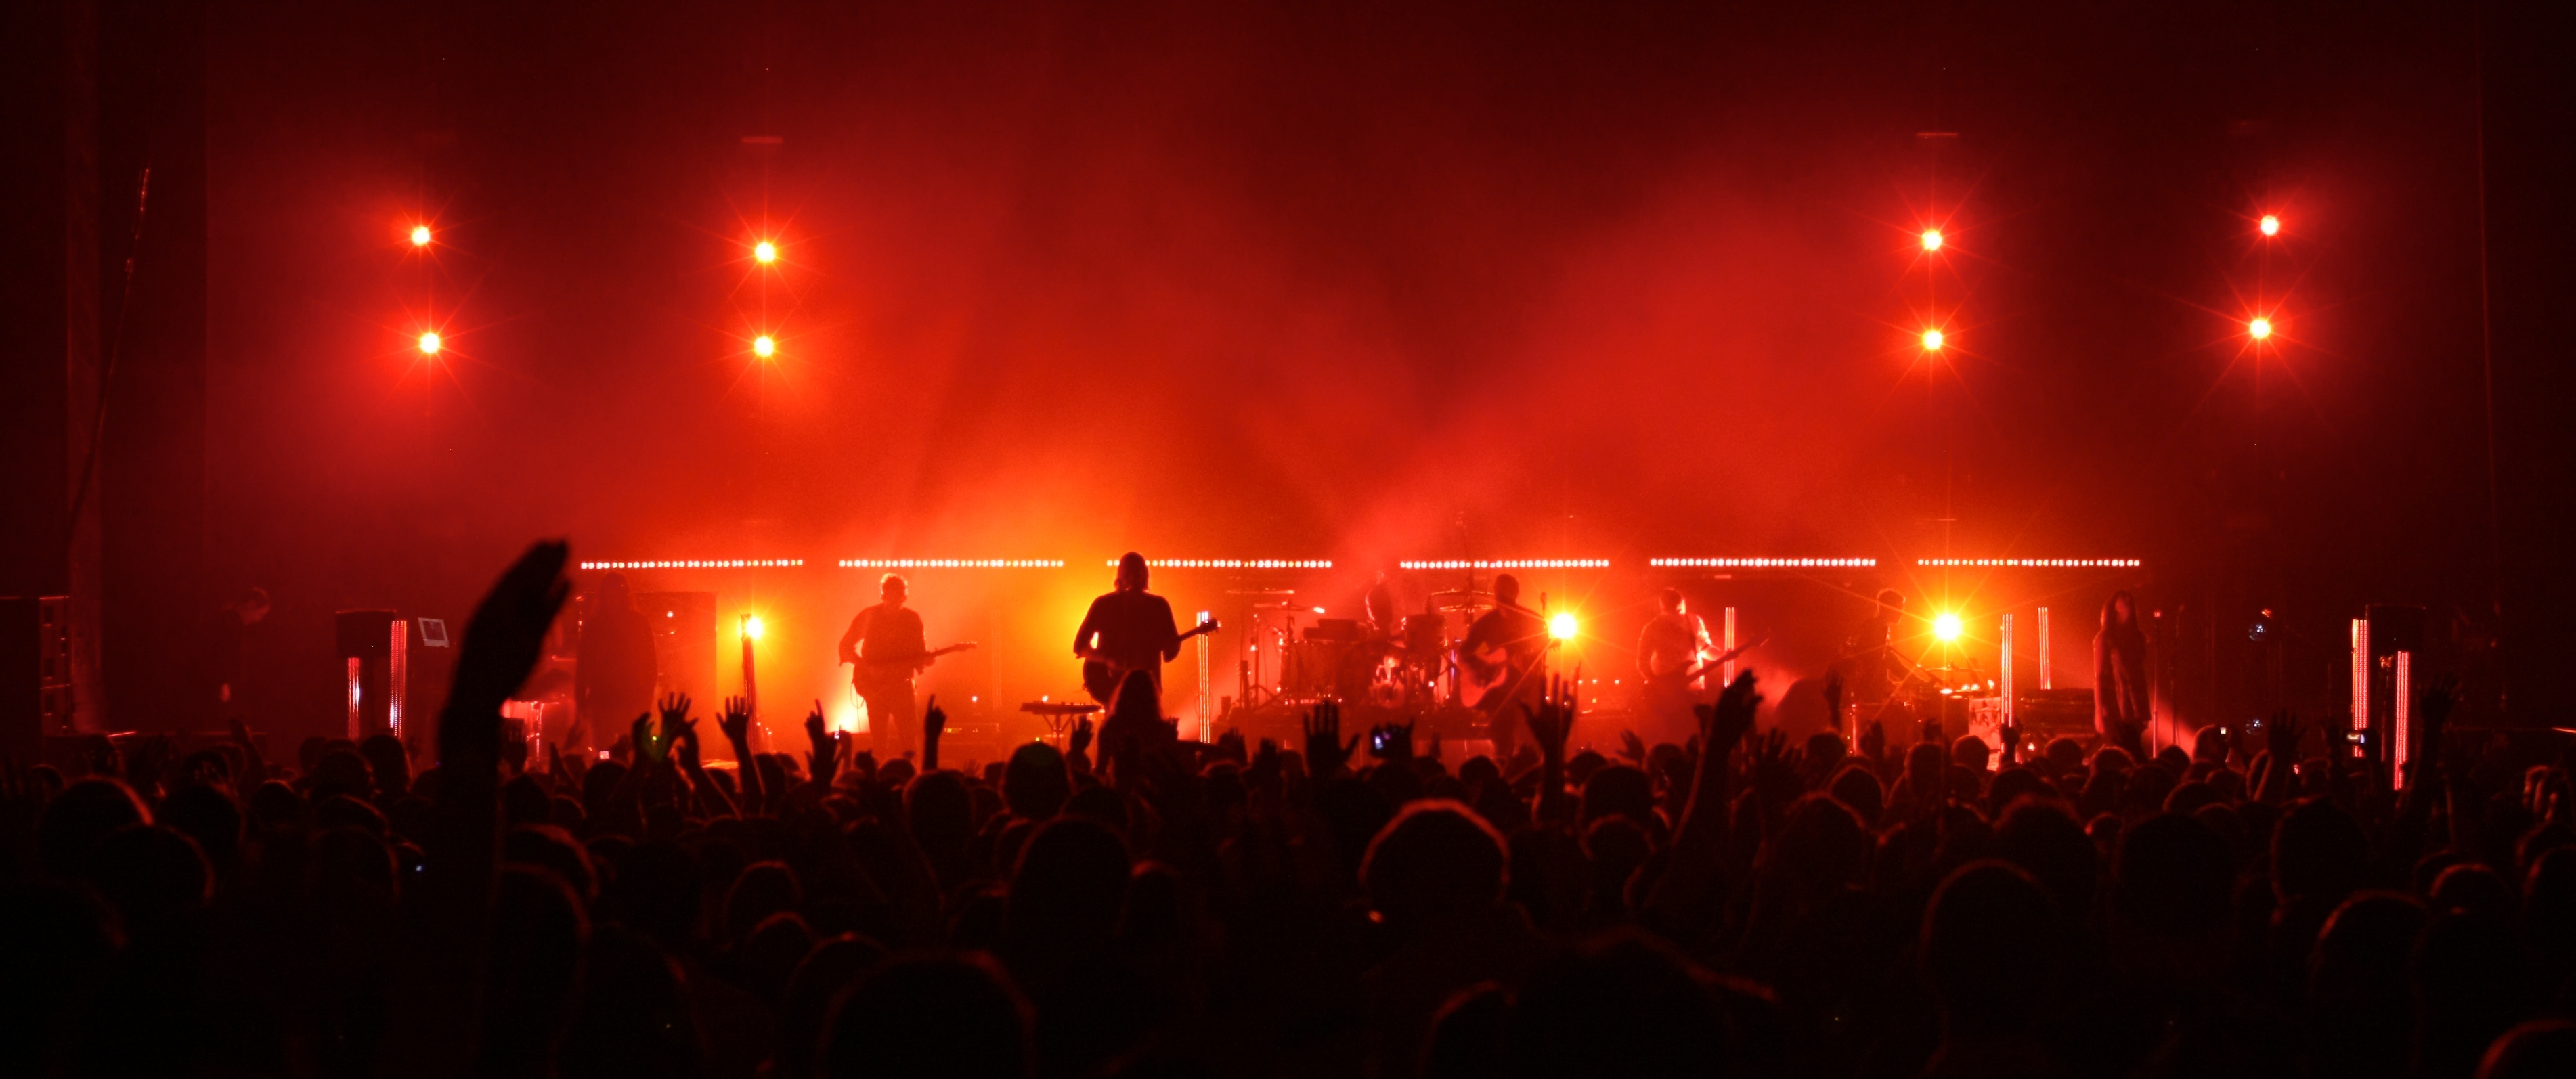 https://tableprepared.files.wordpress.com/2014/06/worship-band-lights.jpg